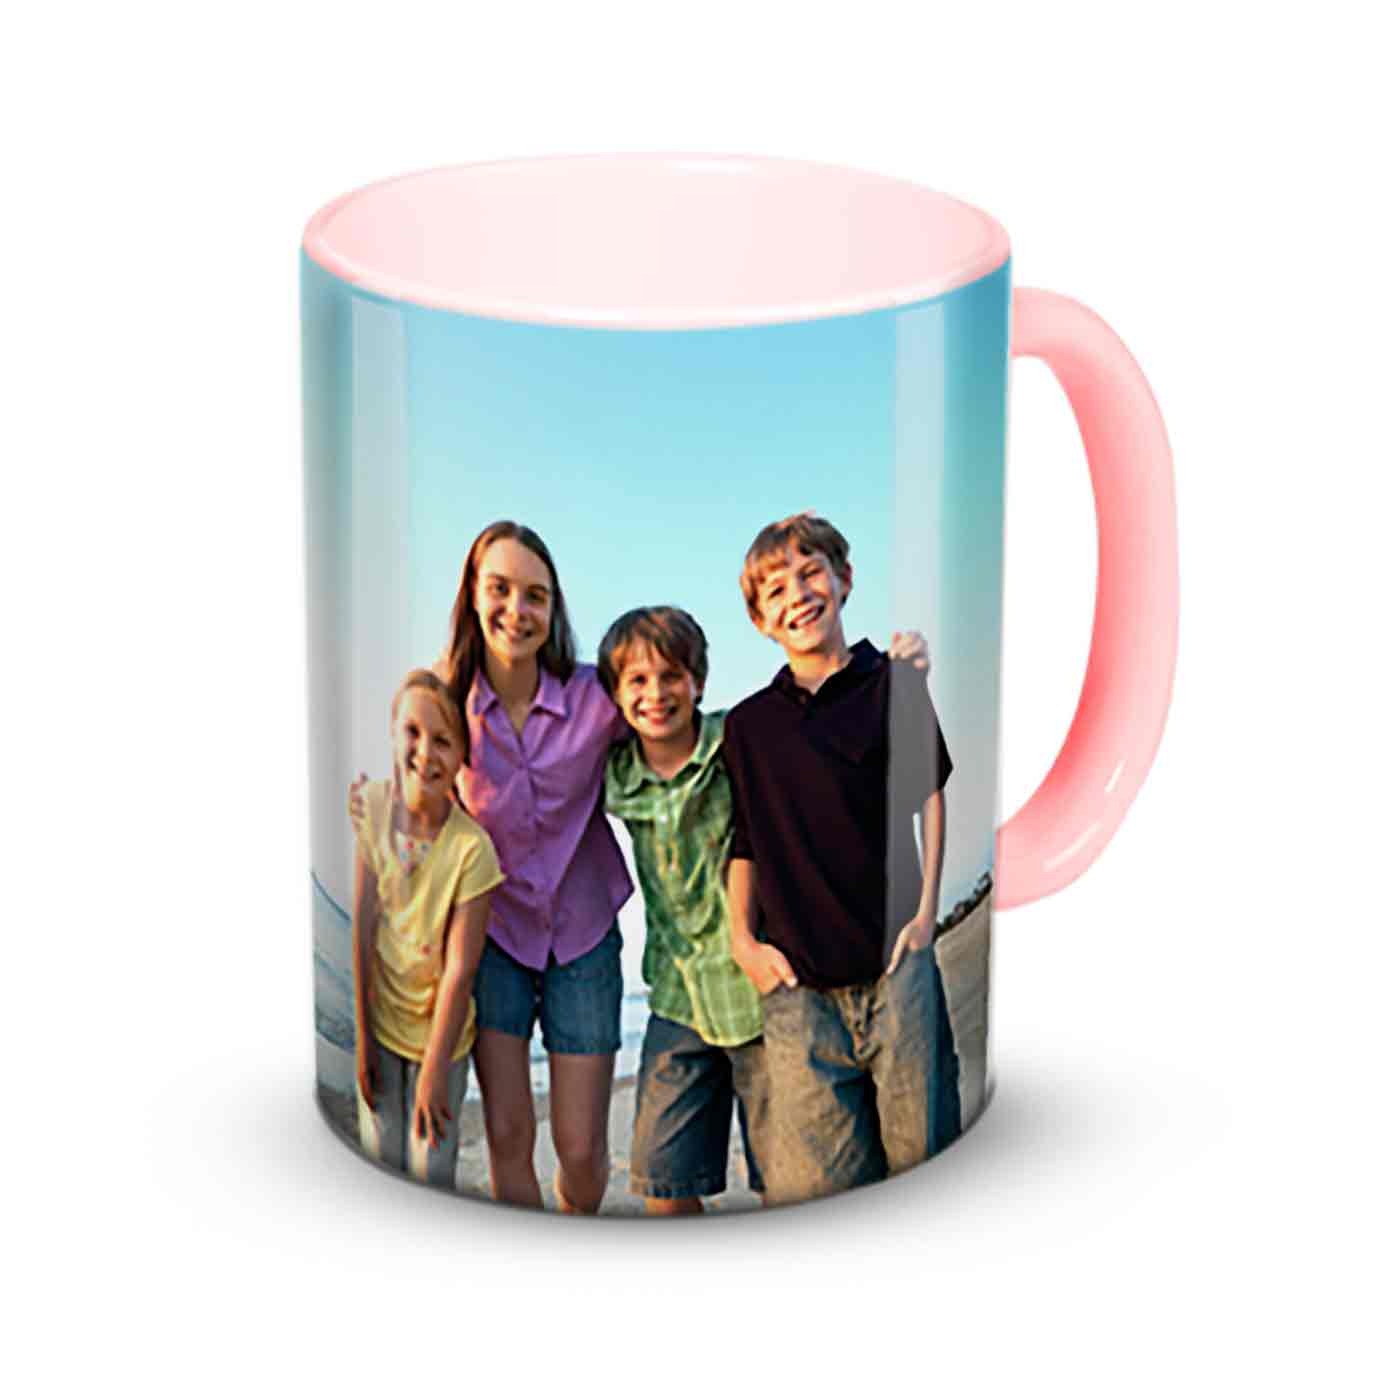 Love 11 oz. Pink Accent Mug, Gift -United States Of Love